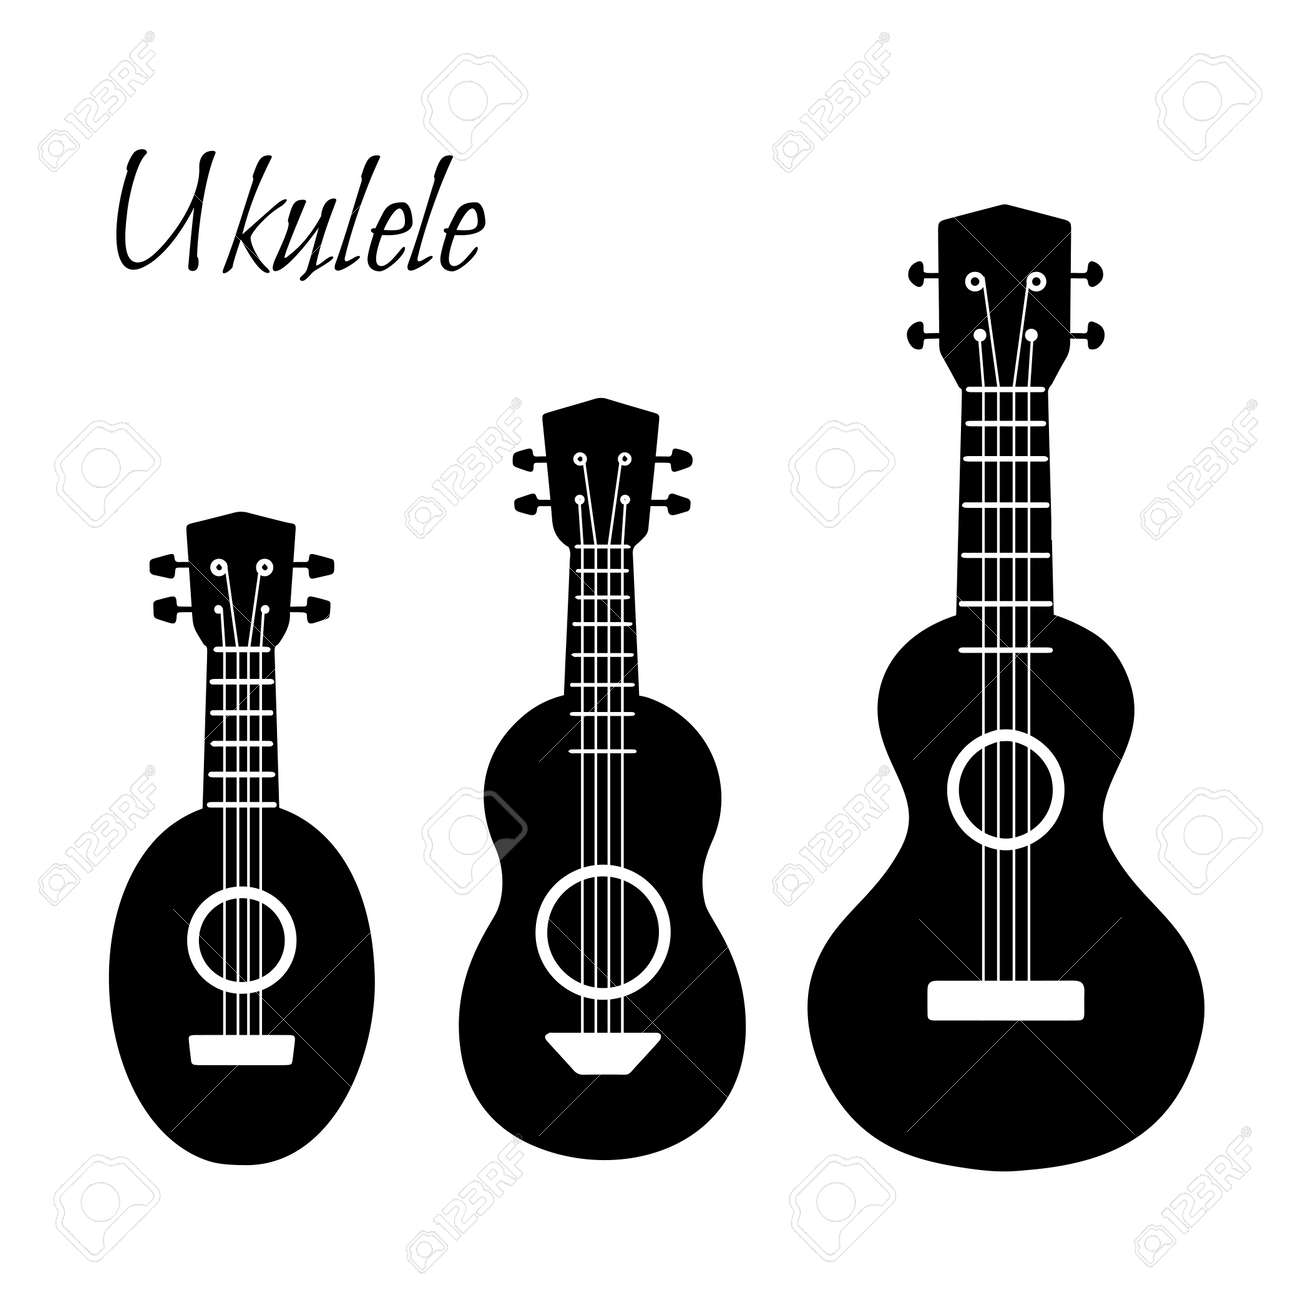 Set of black simple silhouette ukulele. Hawaiian music. Musical string instrument. Vector element for badges, banners, sticker and your design creativity - 157592792